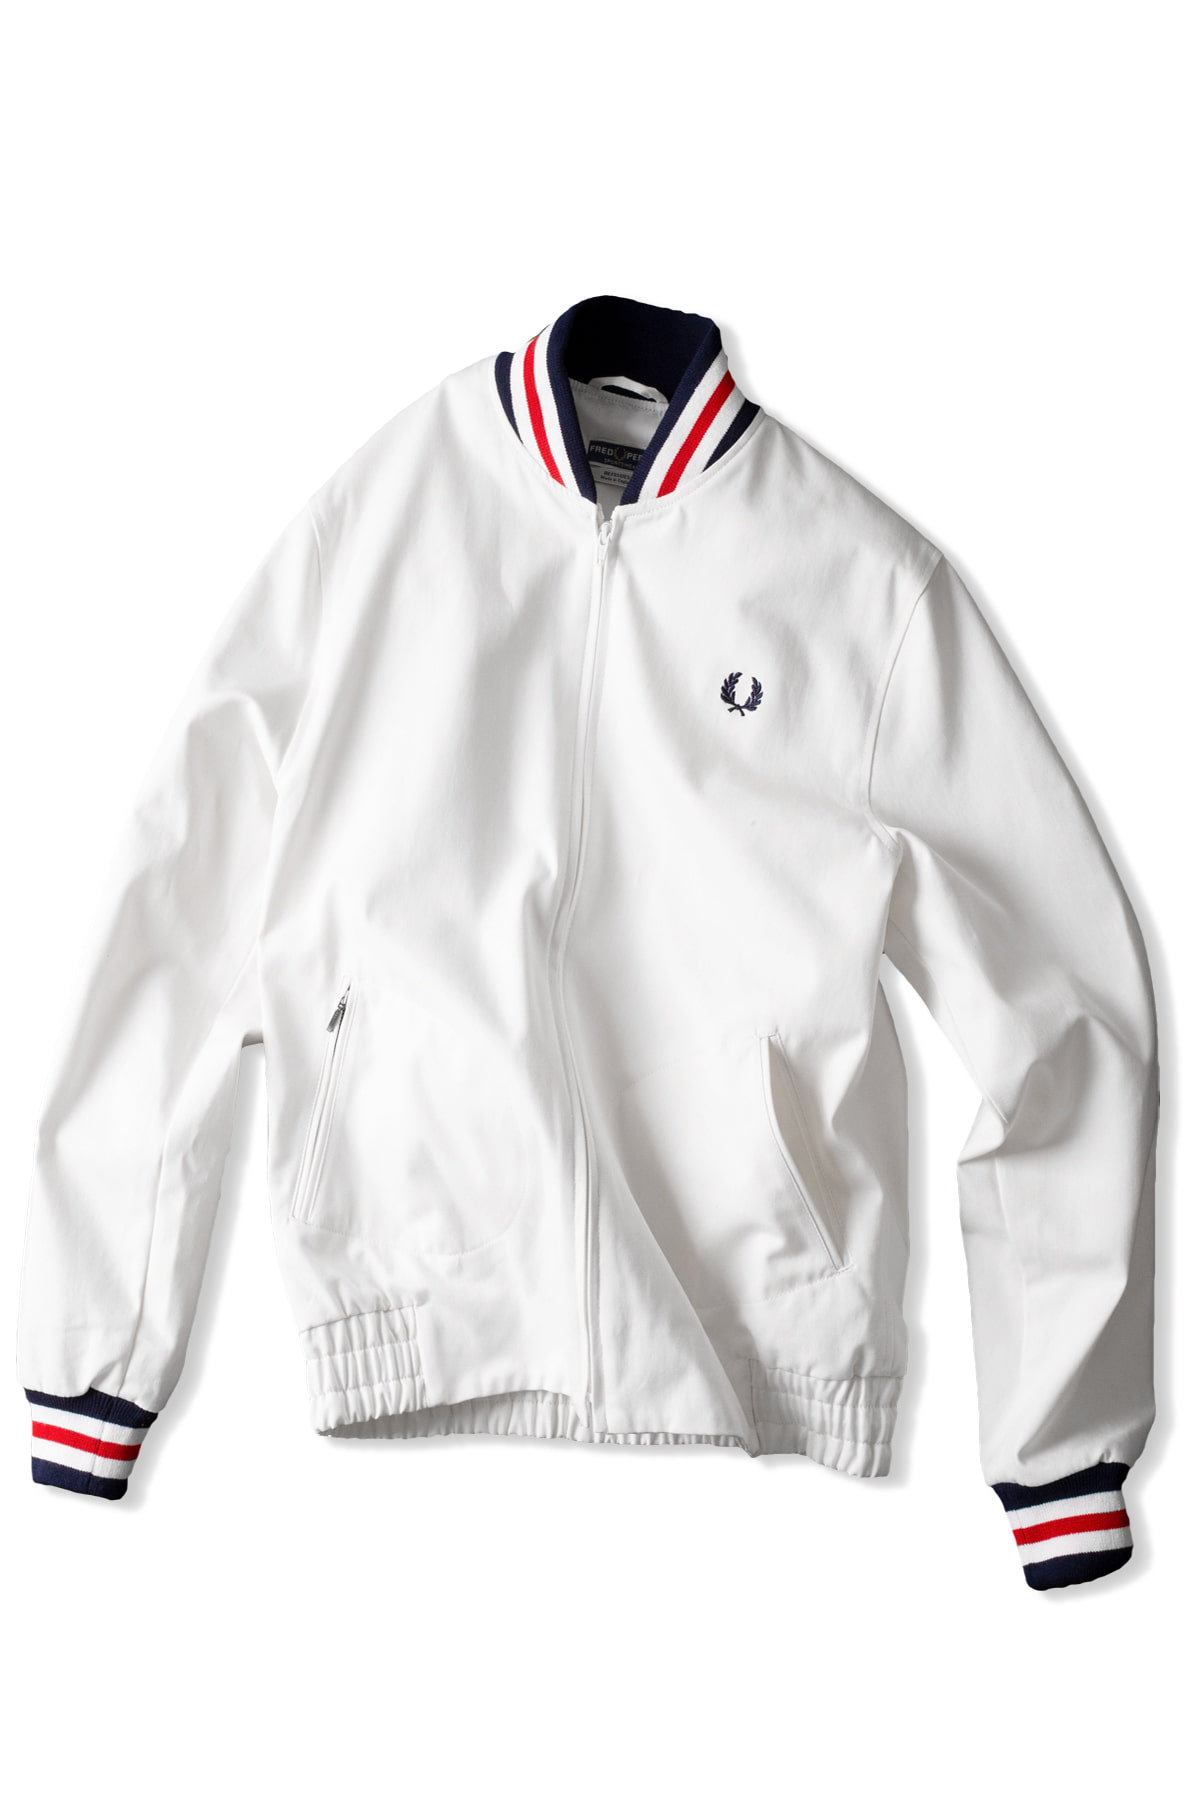 FRED PERRY : Mie Original Tennis Bomber (Snow White)